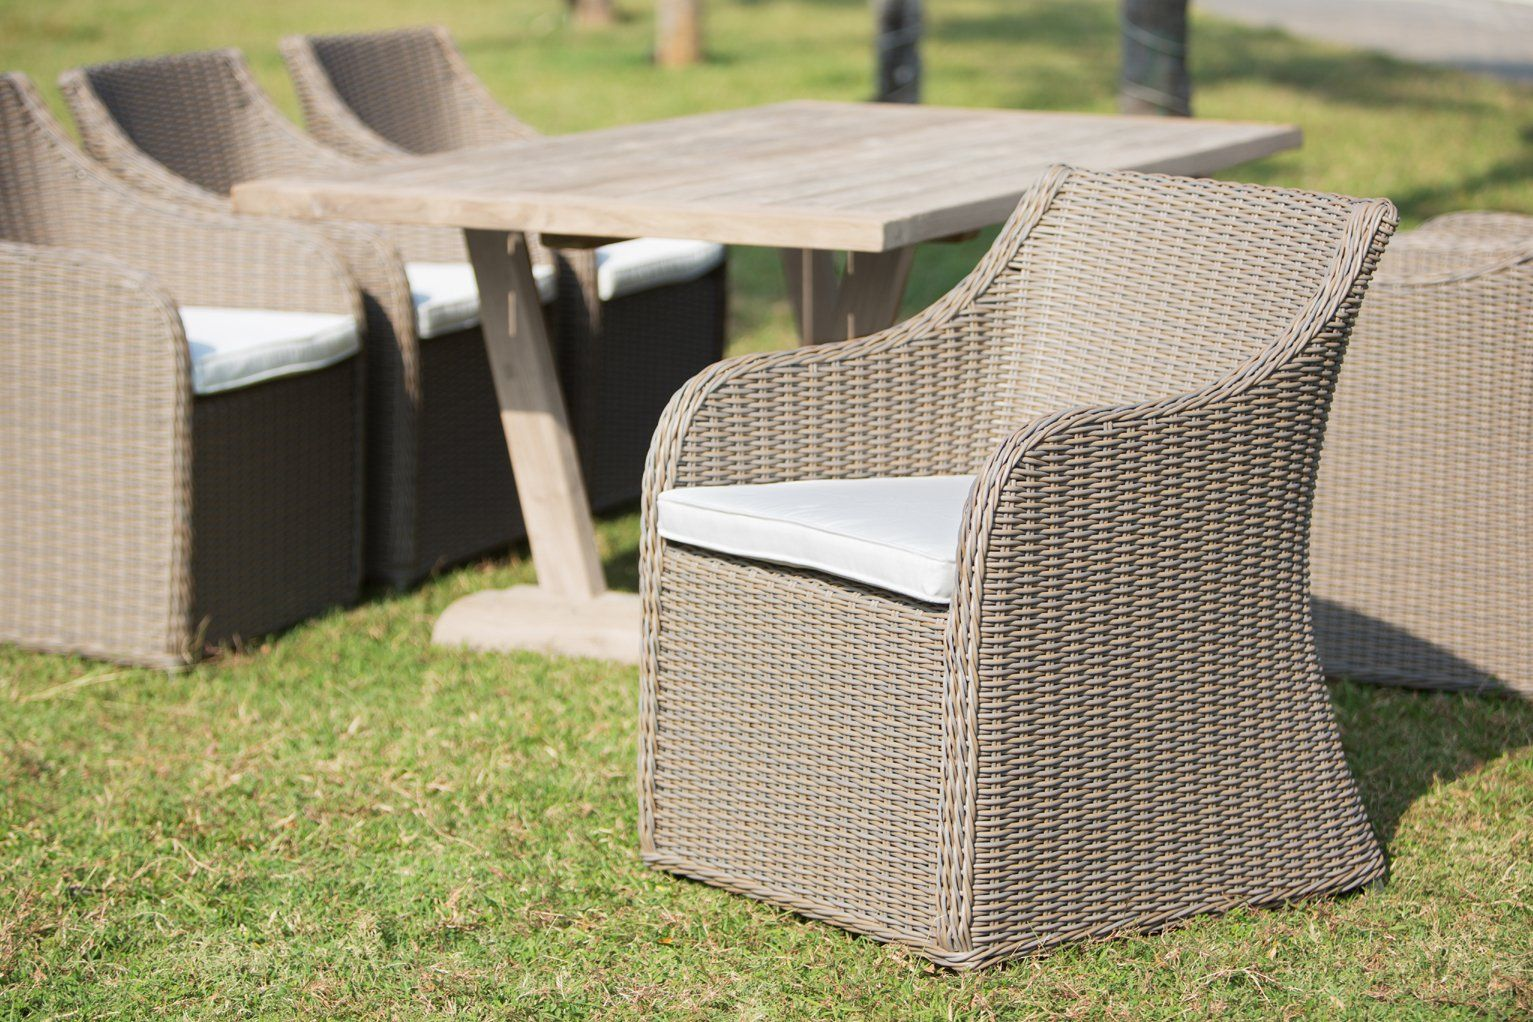 Our Outdoor Porto Fino Chair Is Made With A Lightweight Aluminum Frame Then Hand Woven With Our All Weather Patio Dining Chairs Outdoor Armchair Dining Chairs